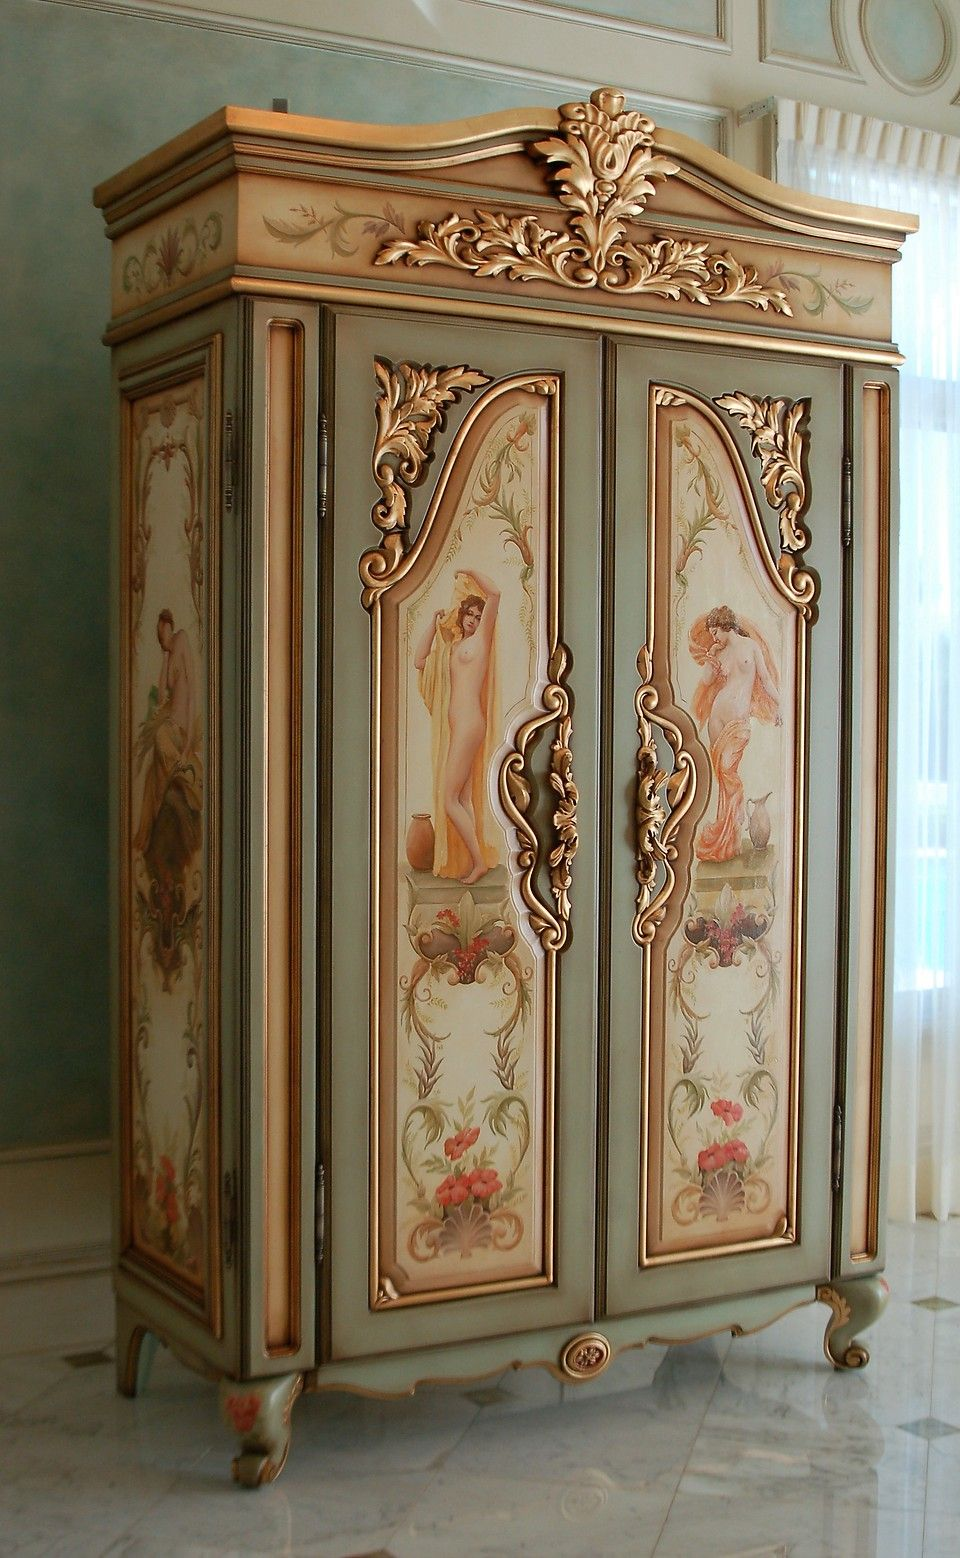 Best Painted Furniture Collection Joel Cook Painted Furniture Decor Furniture Makeover 400 x 300